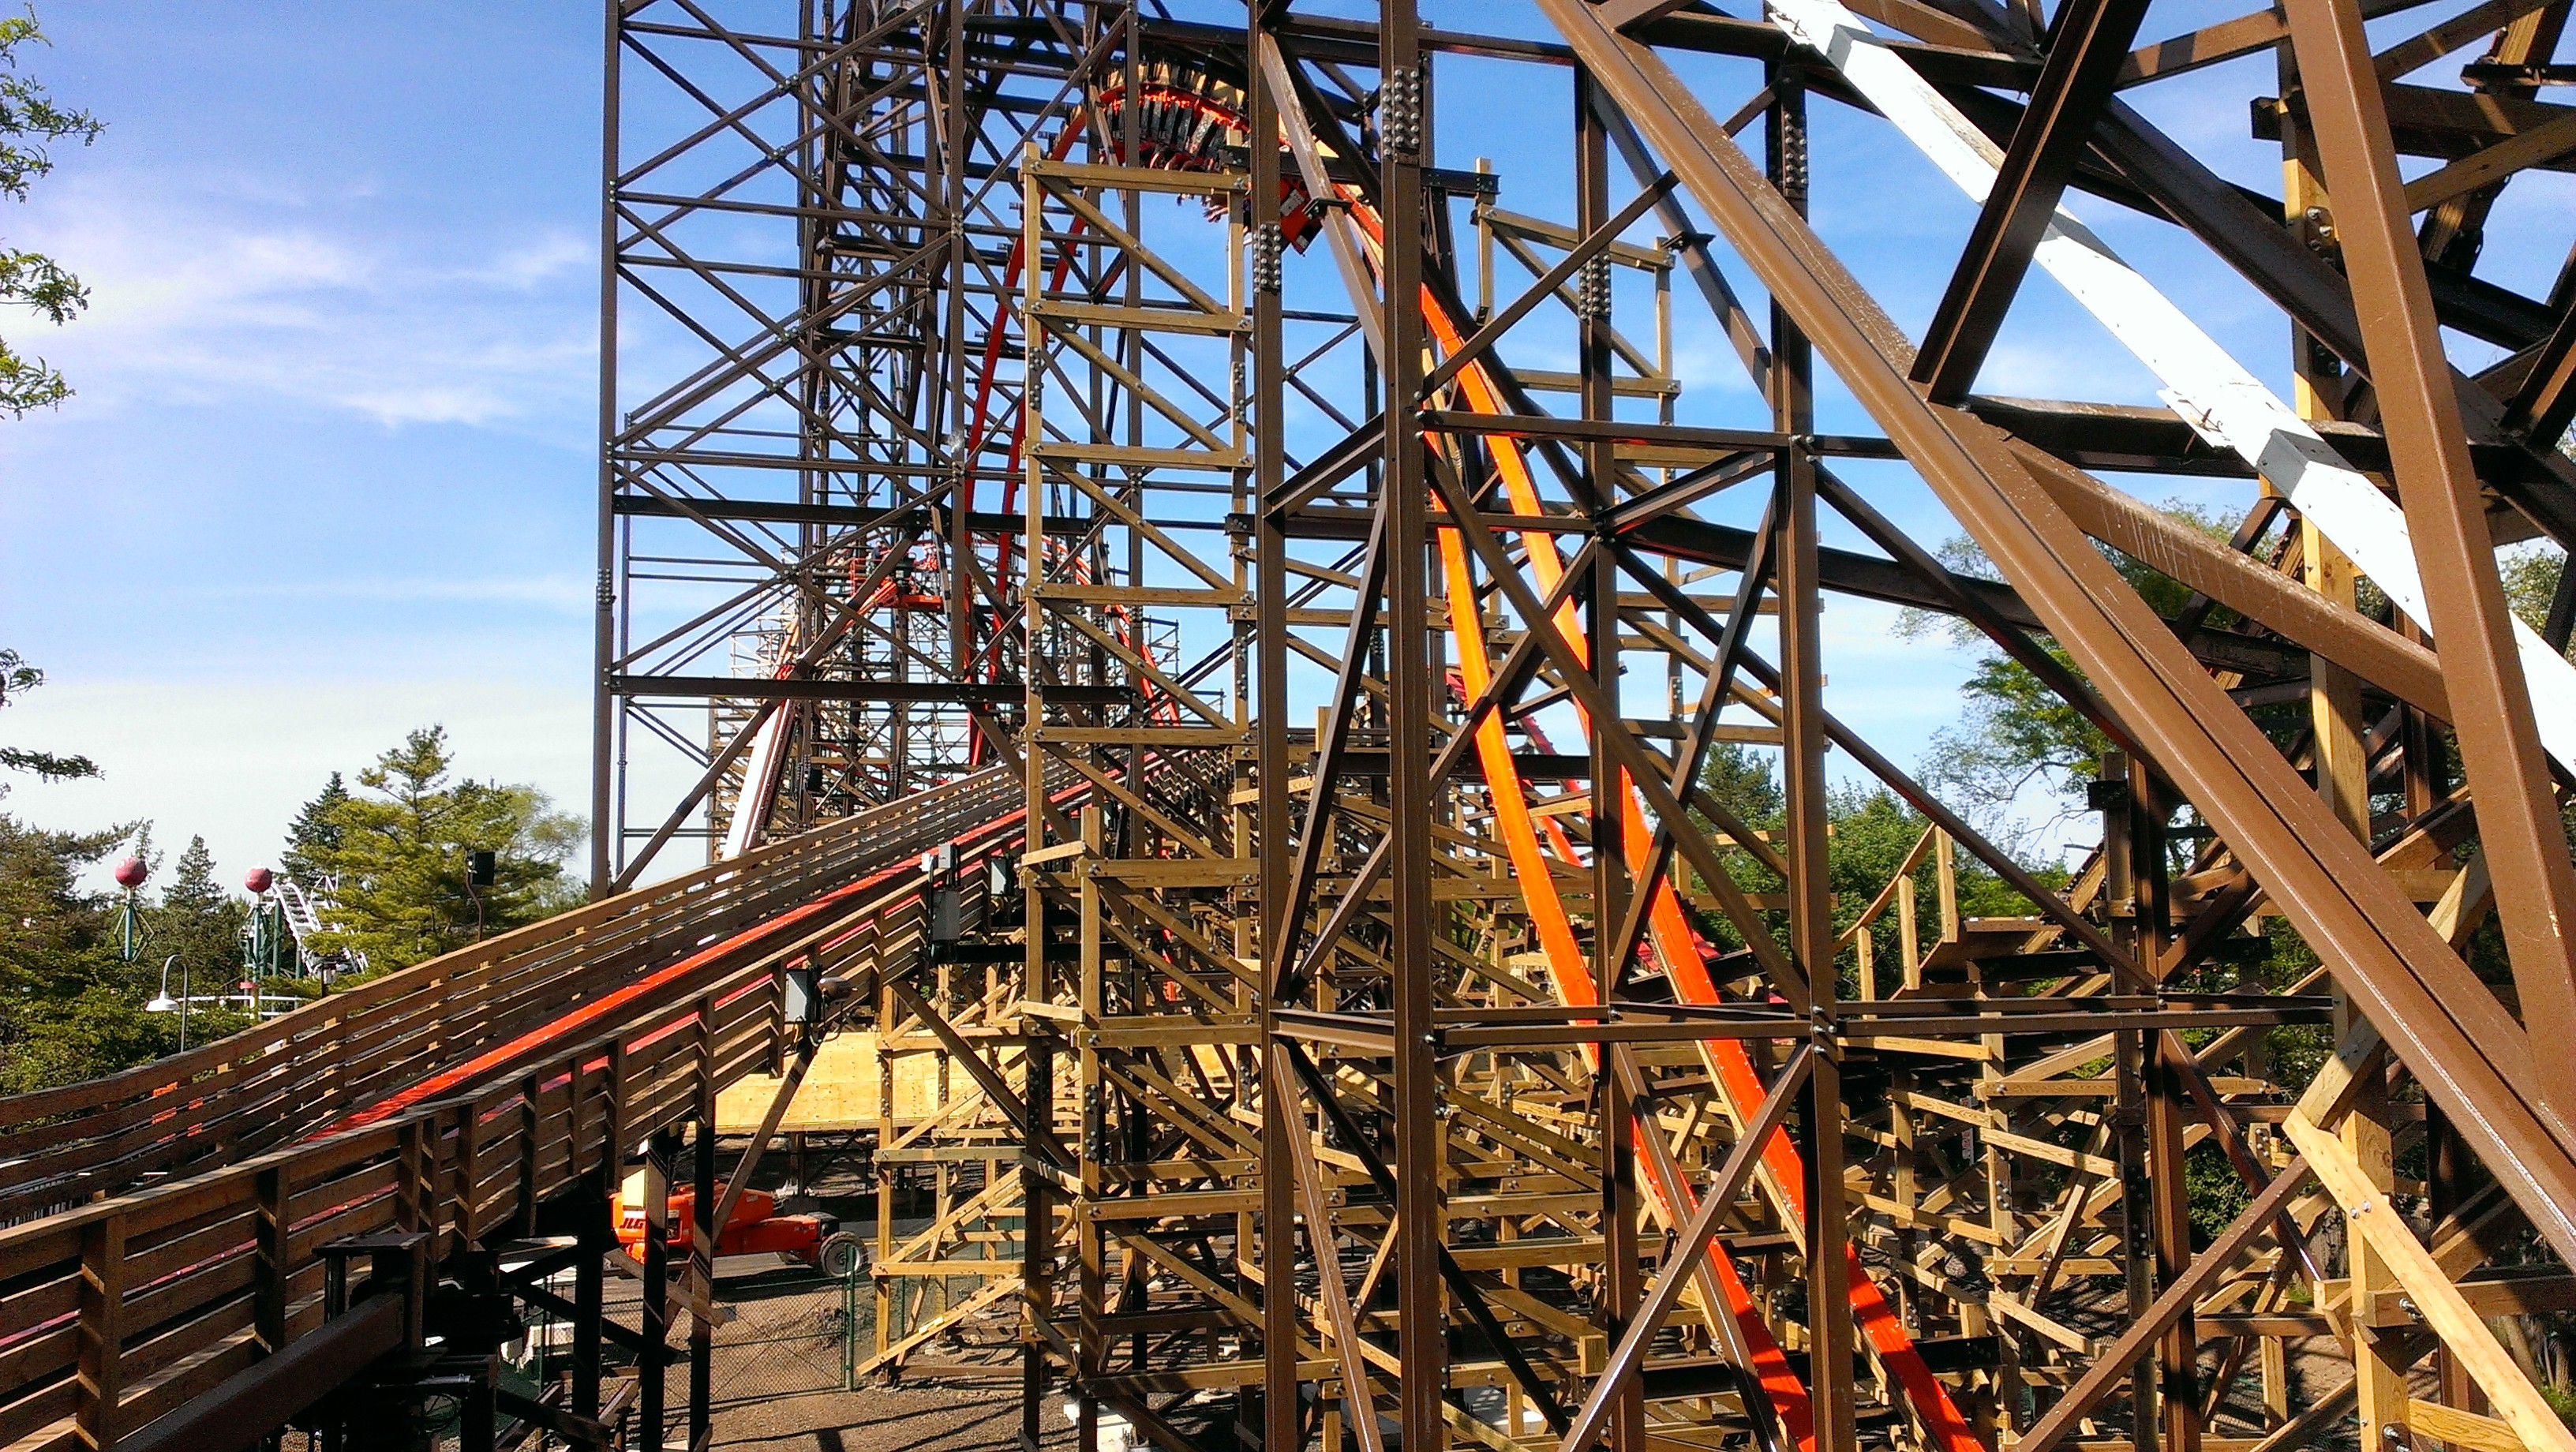 Goliath-Great-America-01